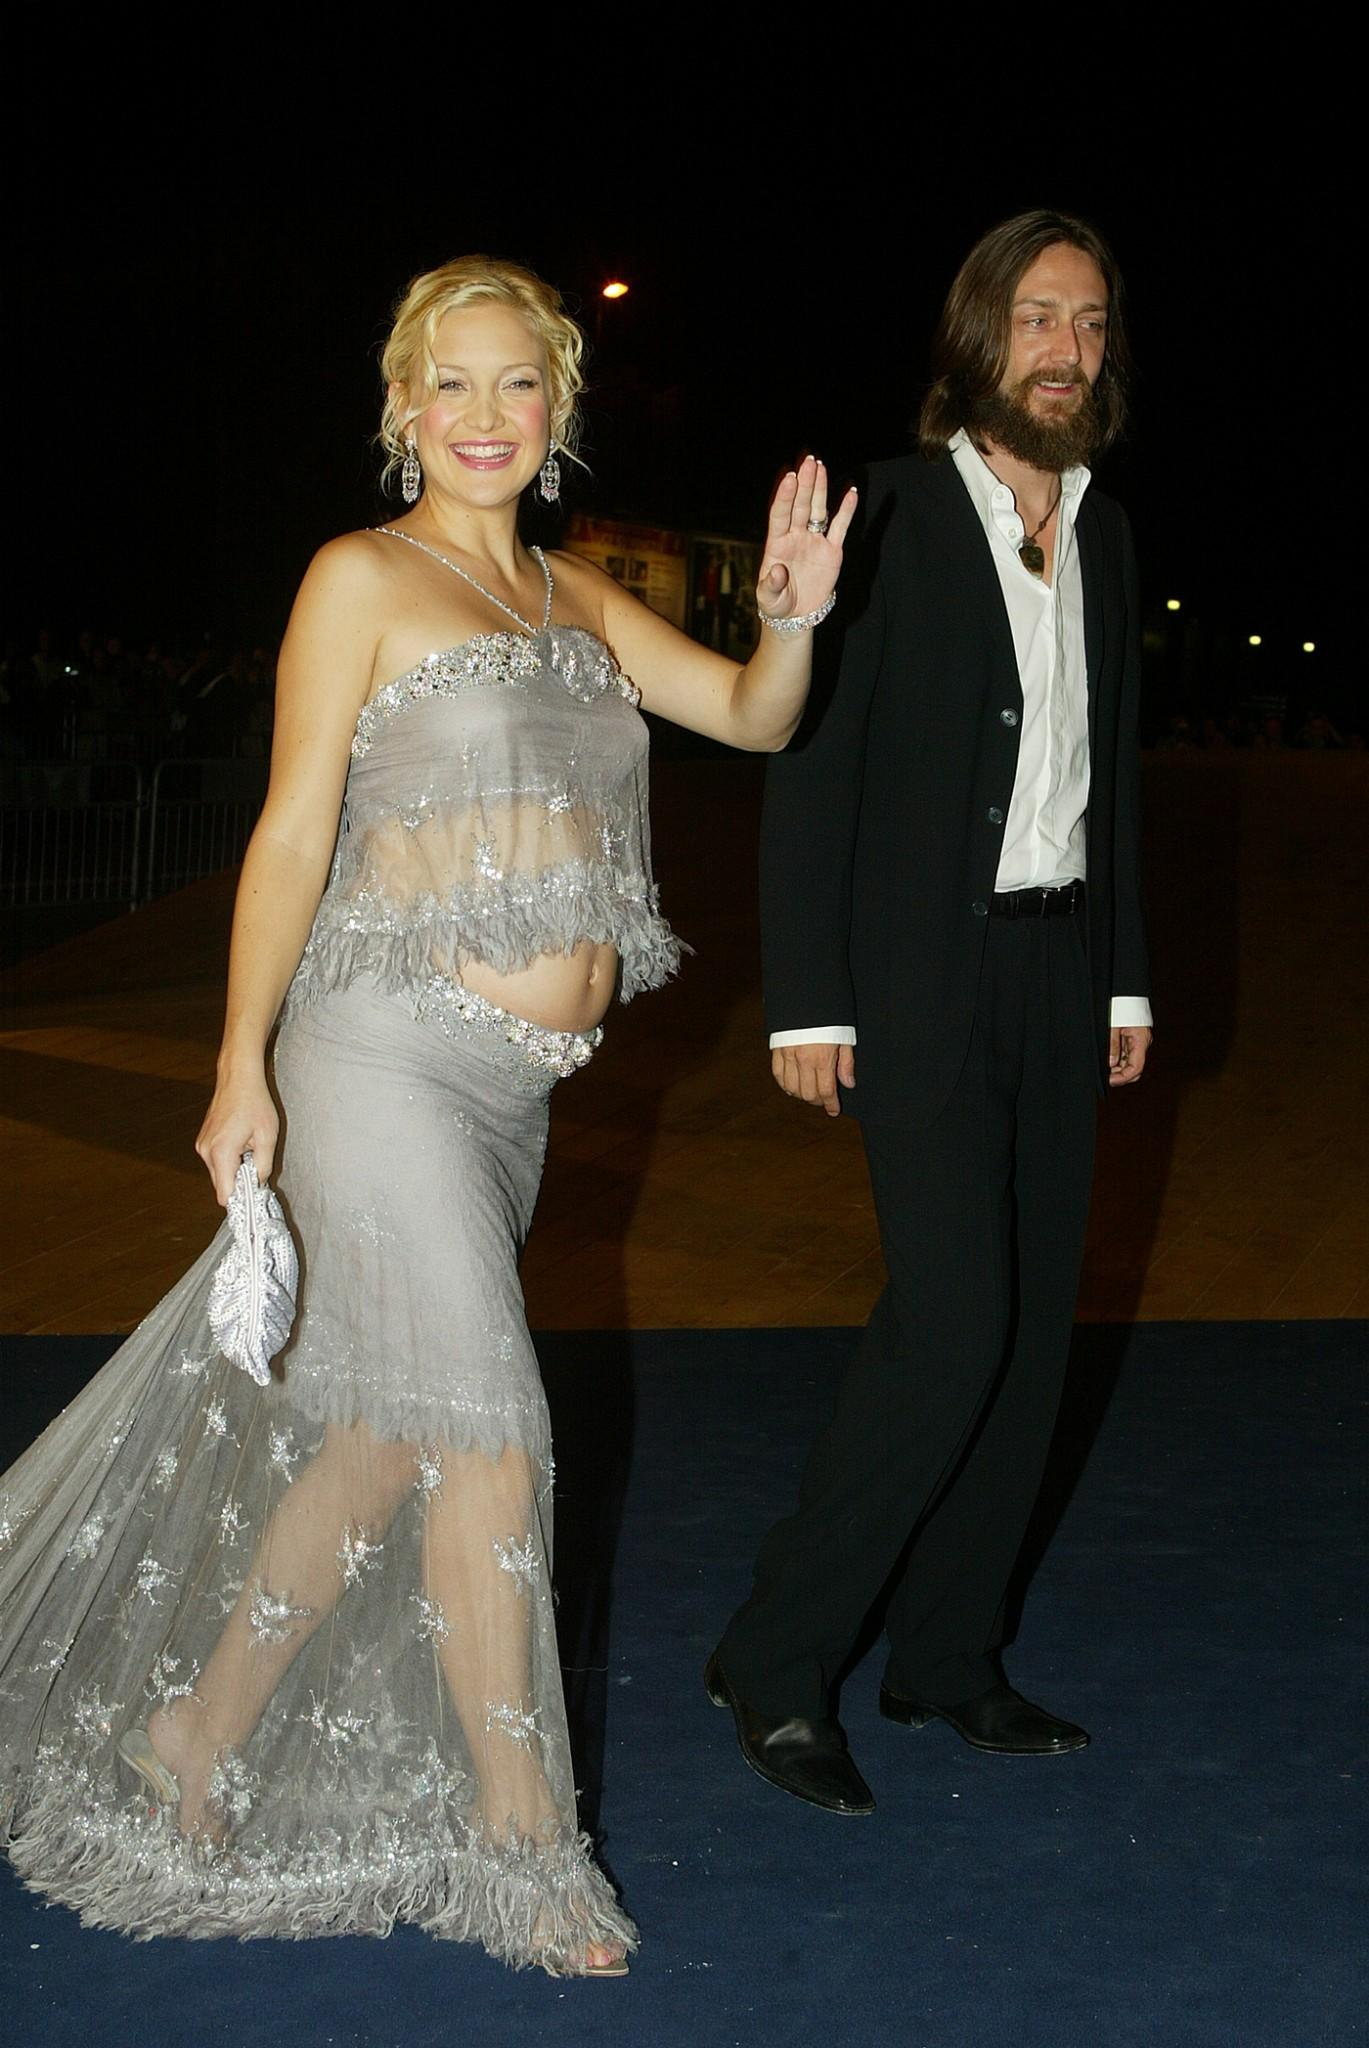 Kate Hudson at the Venice Film Festival in 2003